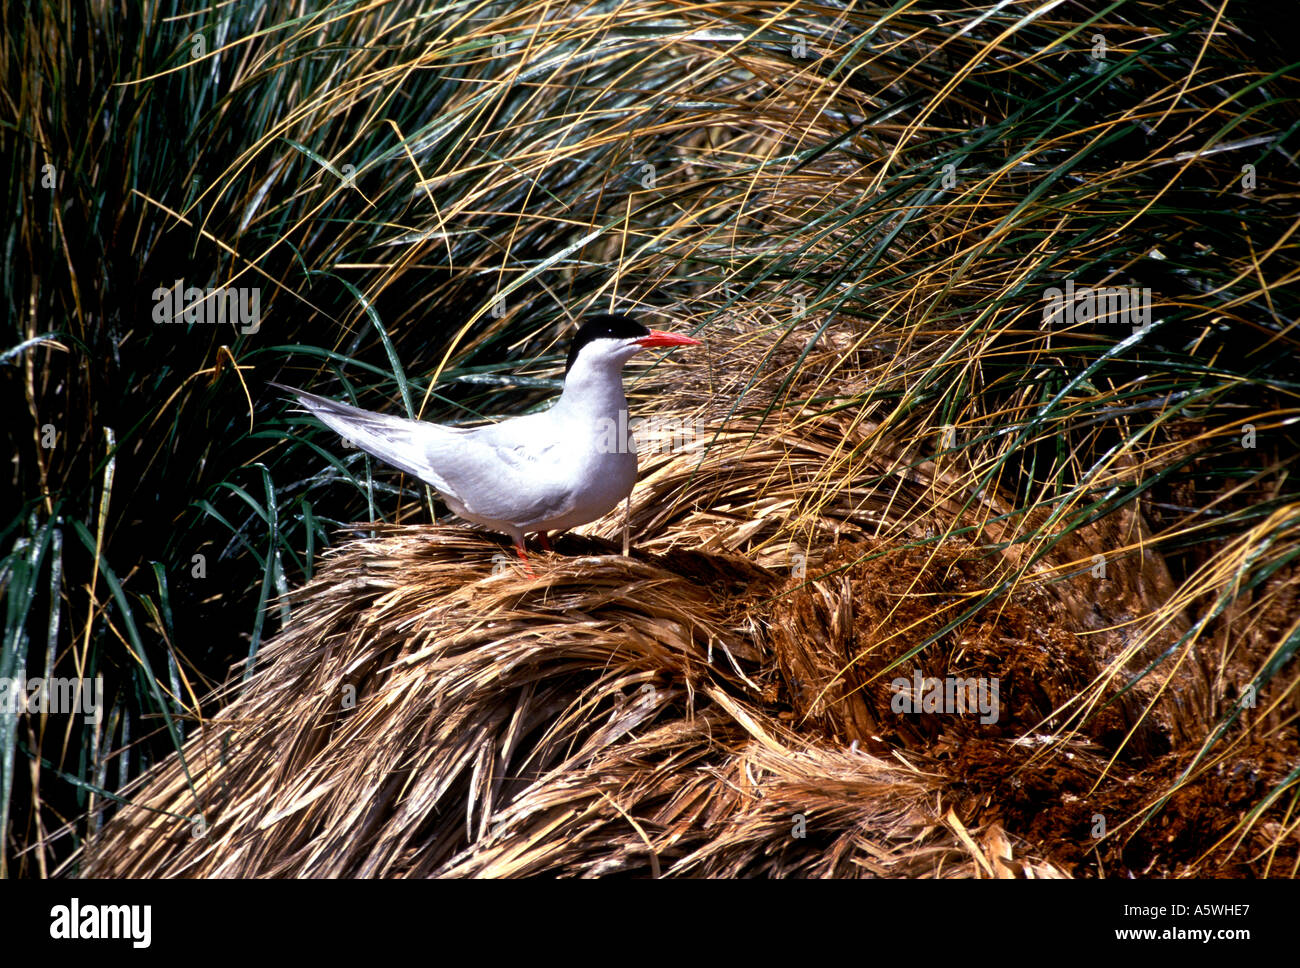 BT2-23 SOUTH AMERICAN TERN ON TUSSOCK - Stock Image